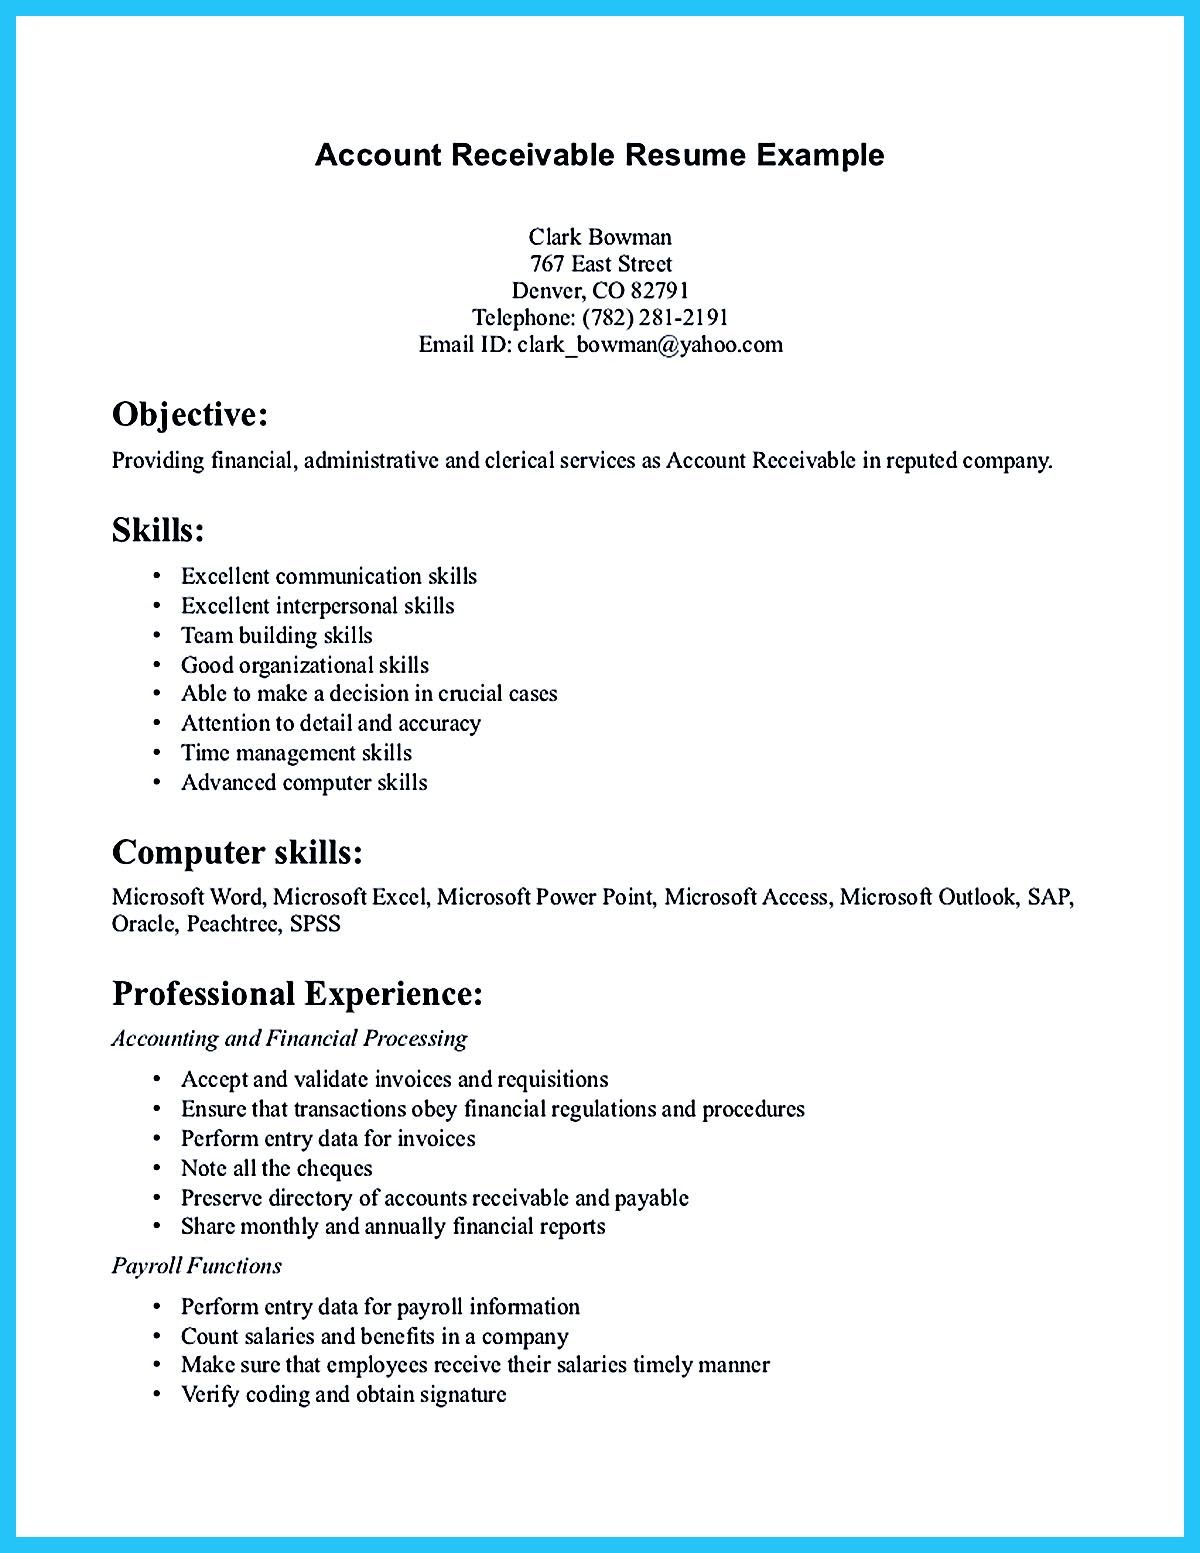 Excellent Communication And Interpersonal Skills Resume Accounts Receivable Resume Presents Both Skills And Also